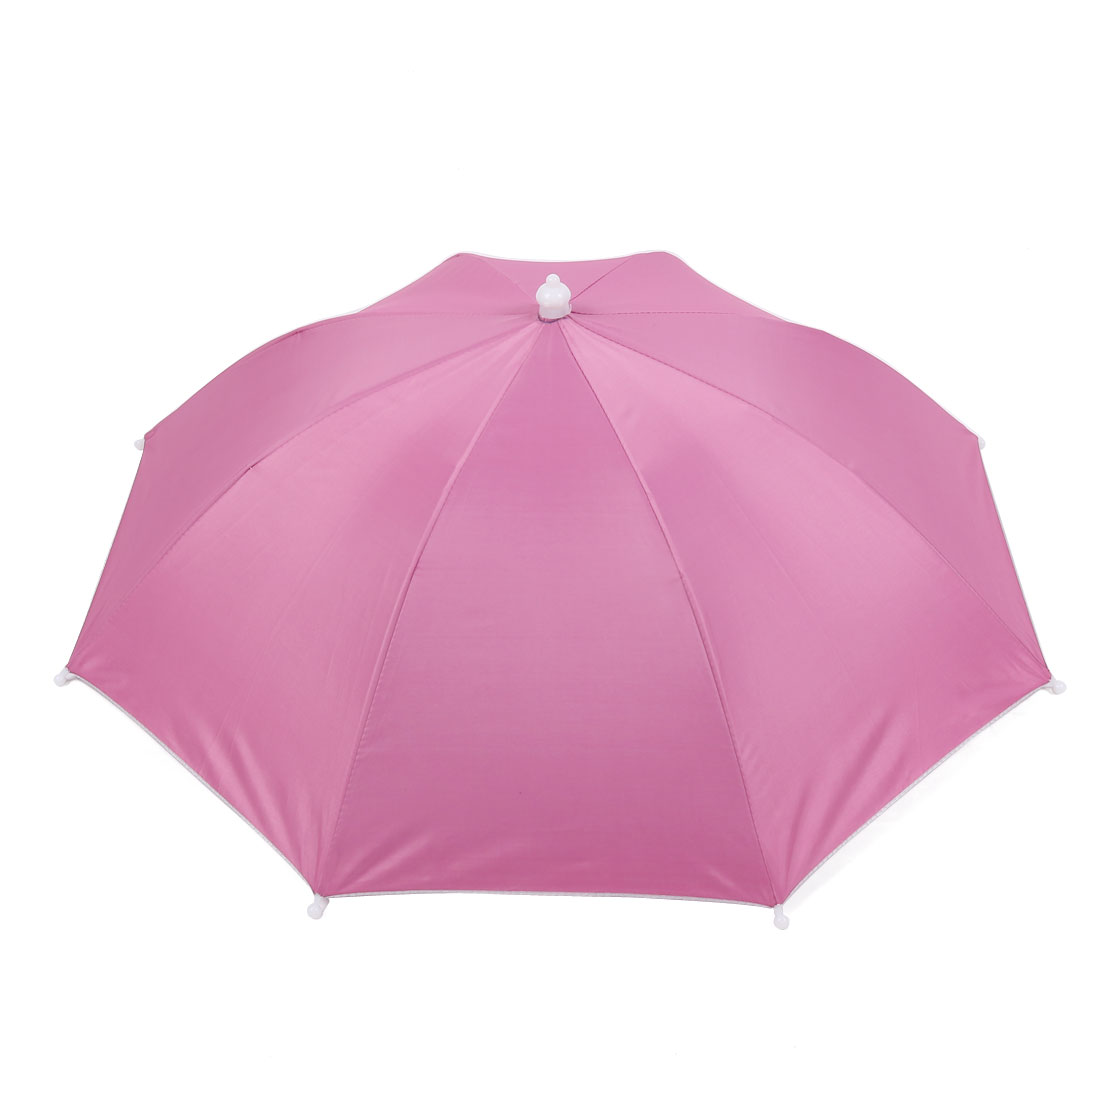 "Hot Pink 24.4"" Girth Headband Hands Free Beach Sun Umbrella Hat"